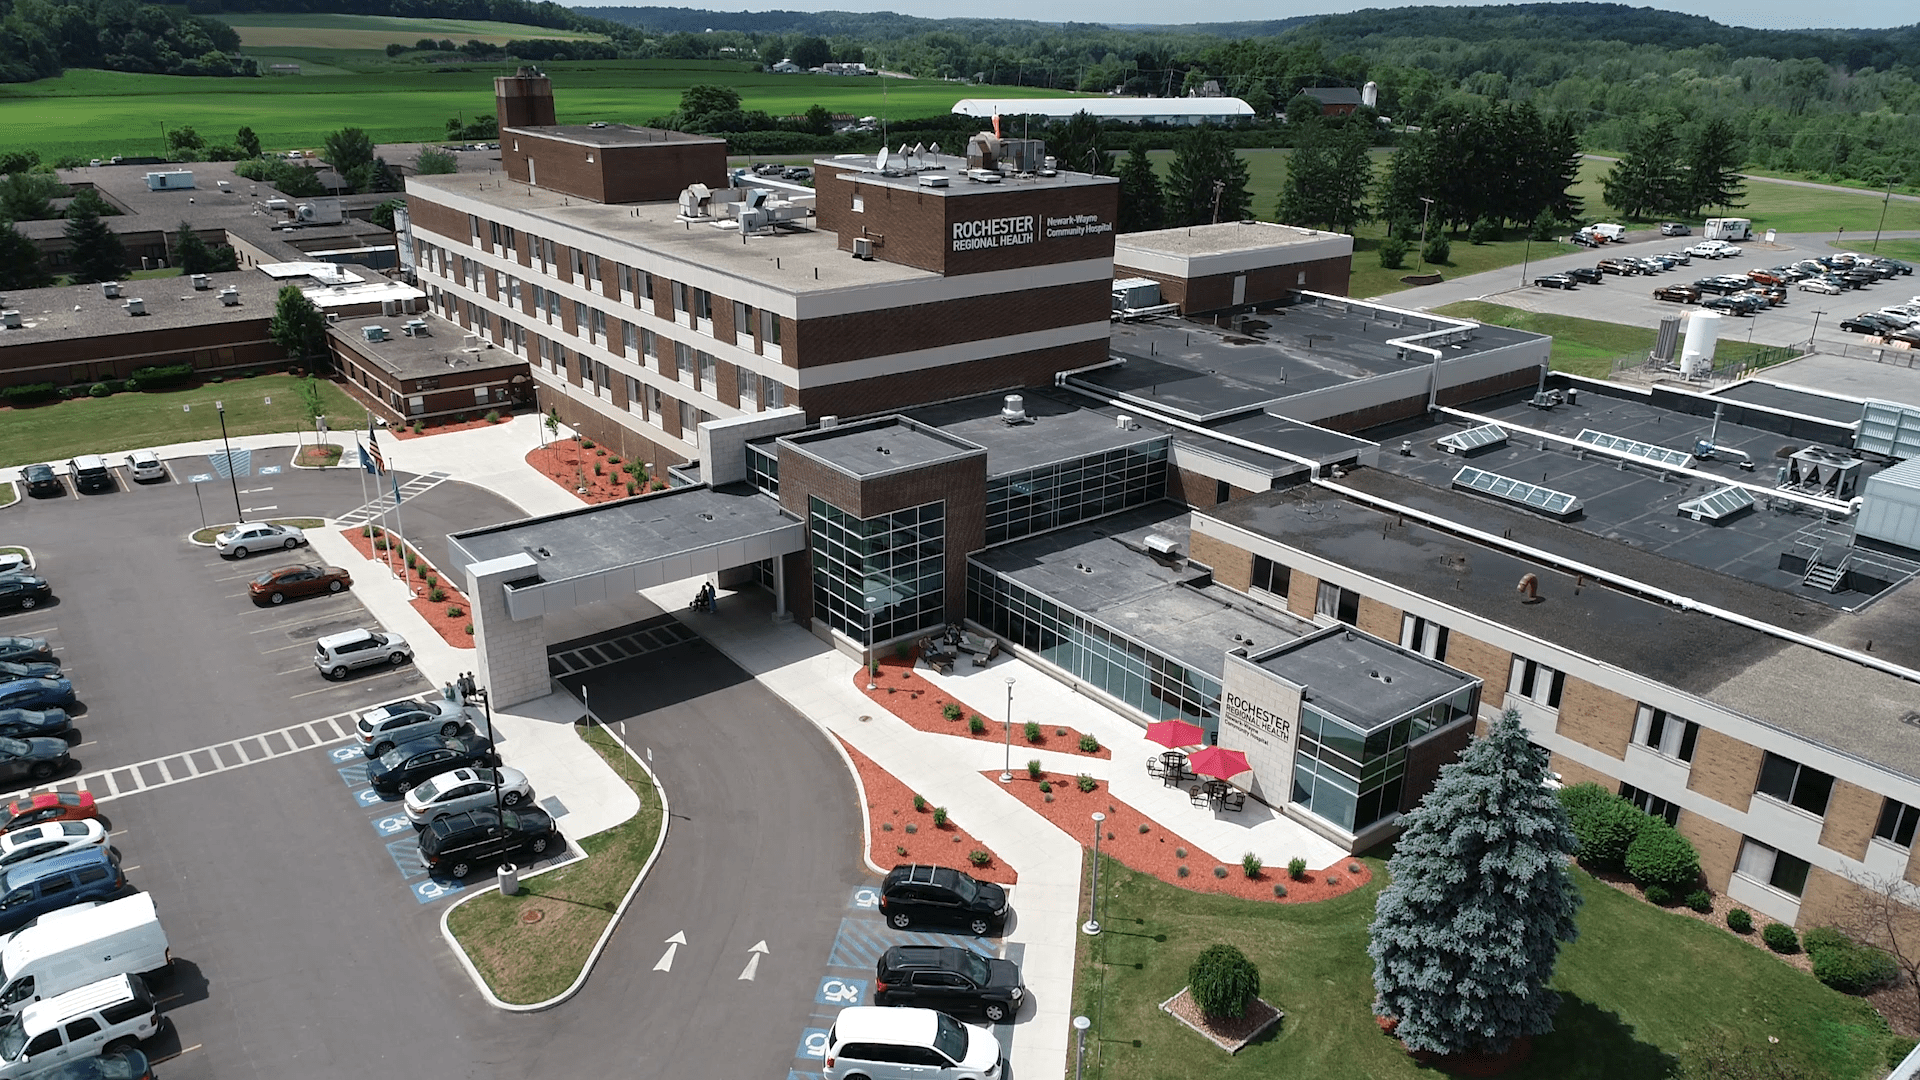 Hospital visits are incredibly complicated, even at facilities where NYS is allowing it